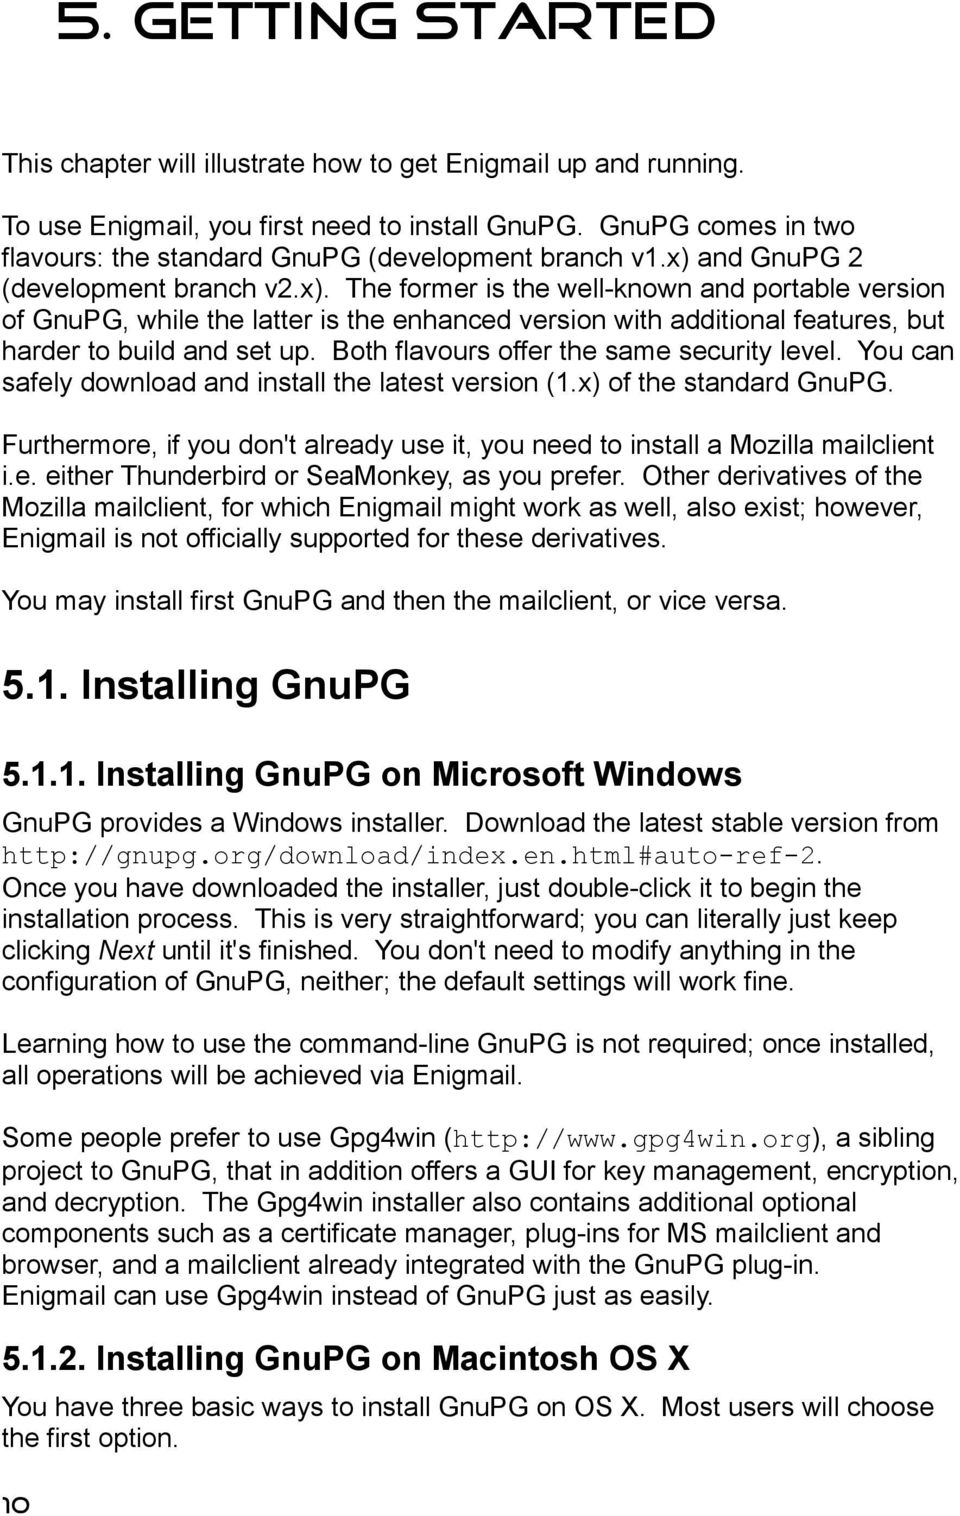 and GnuPG 2 (development branch v2.x). The former is the well-known and portable version of GnuPG, while the latter is the enhanced version with additional features, but harder to build and set up.